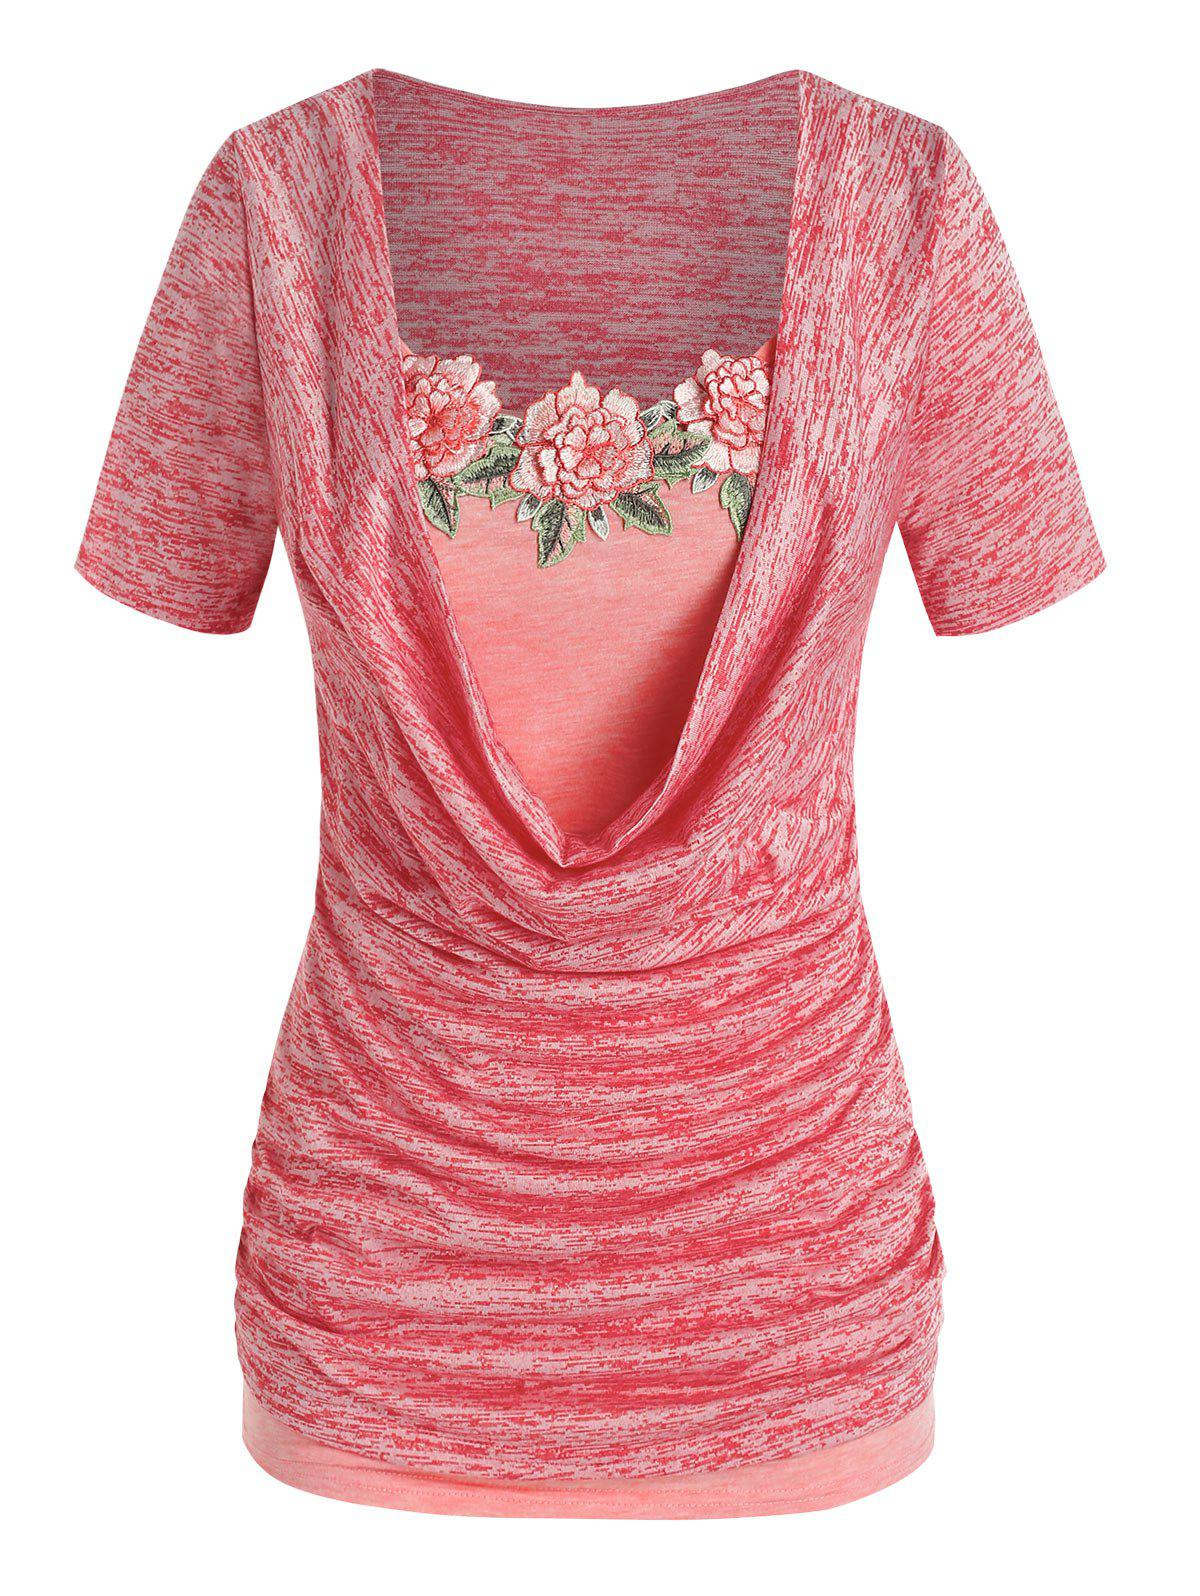 New Plus Size Space Dye Cowl Neck Tee and Floral Applique Tank Top Set